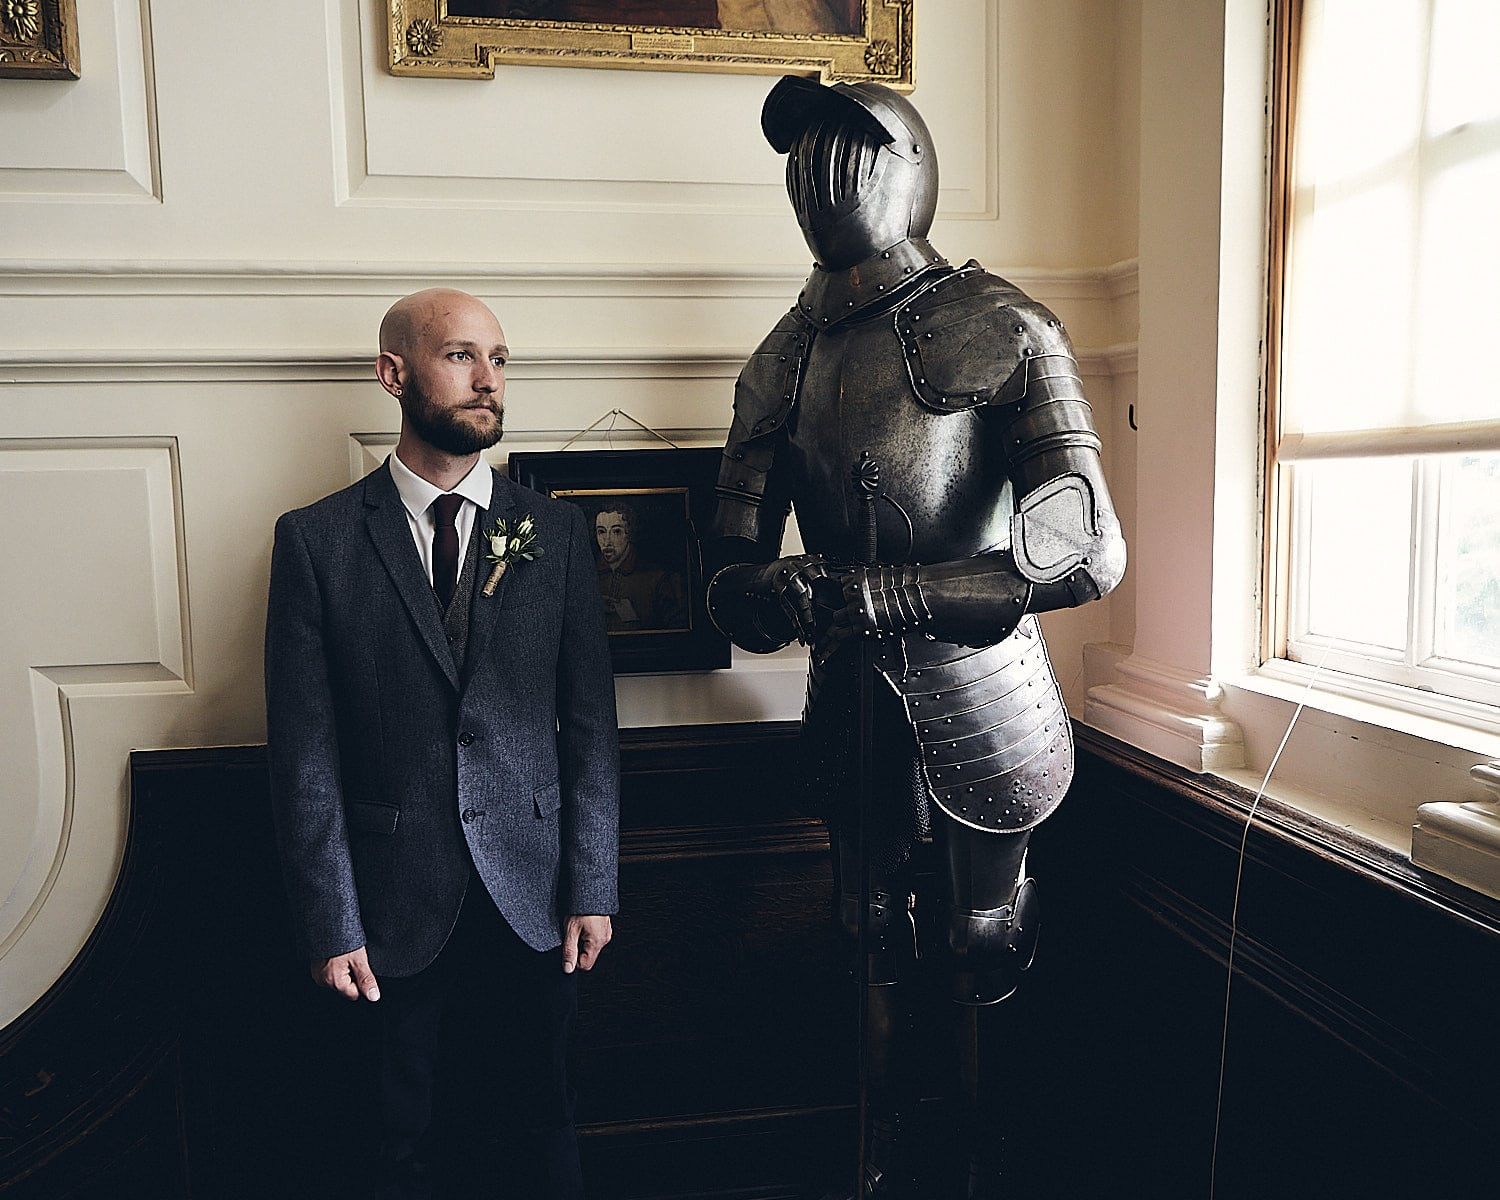 A groom poses for a portrait in the style of a Wes Anderson movie next to a suit of armour.